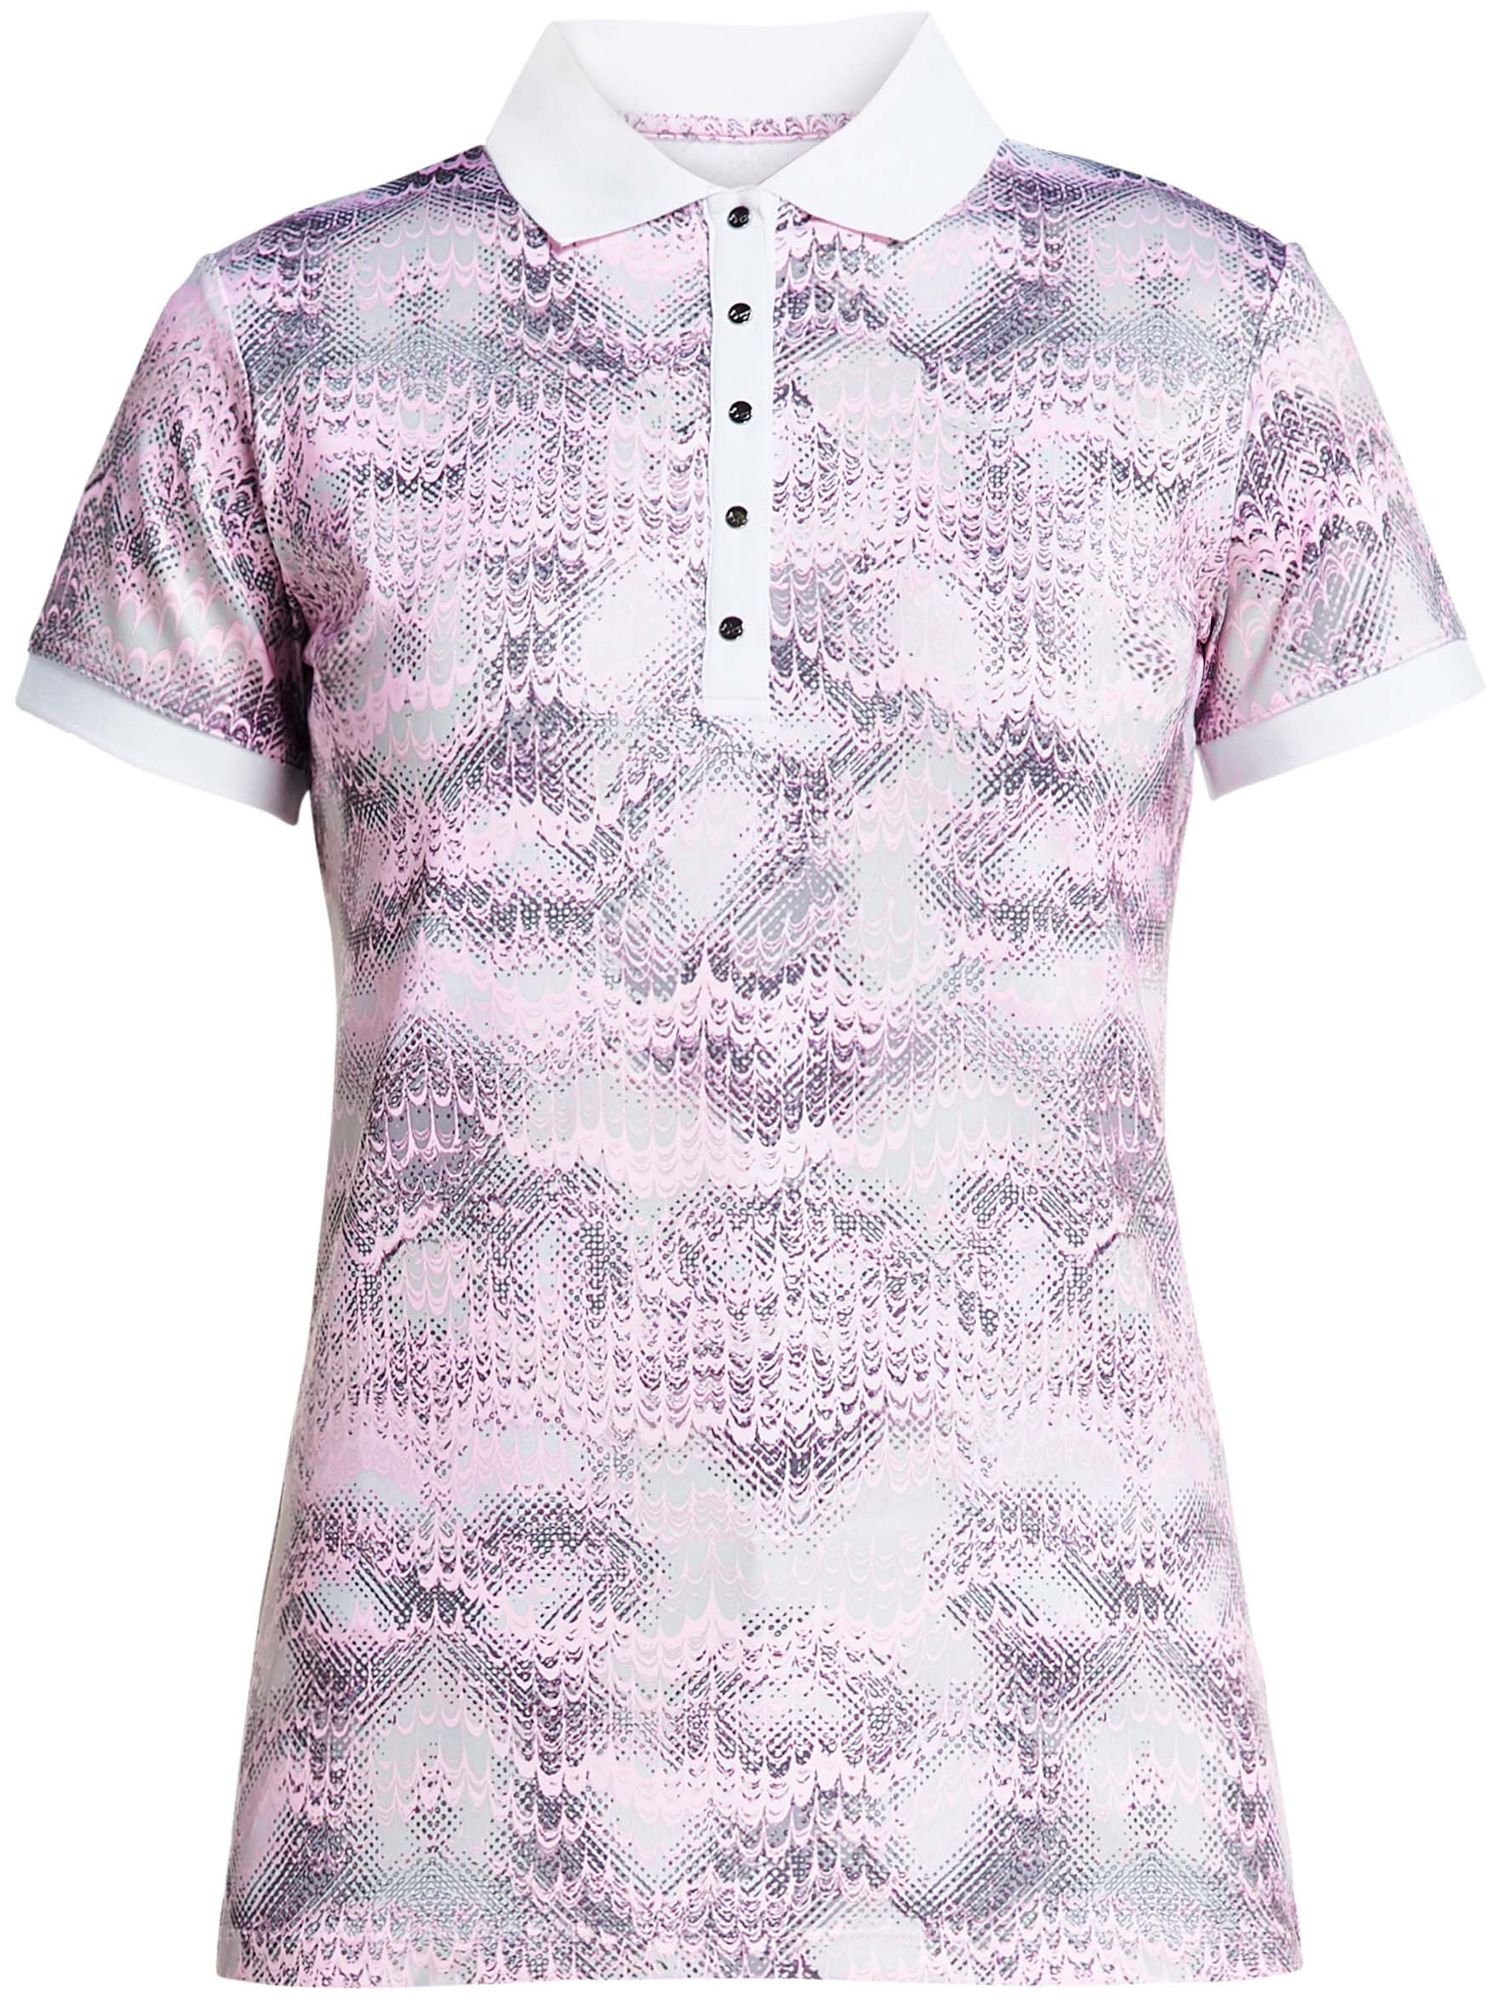 Rohnisch Aop Short Sleeved Polo, 161 Cherry Blossom